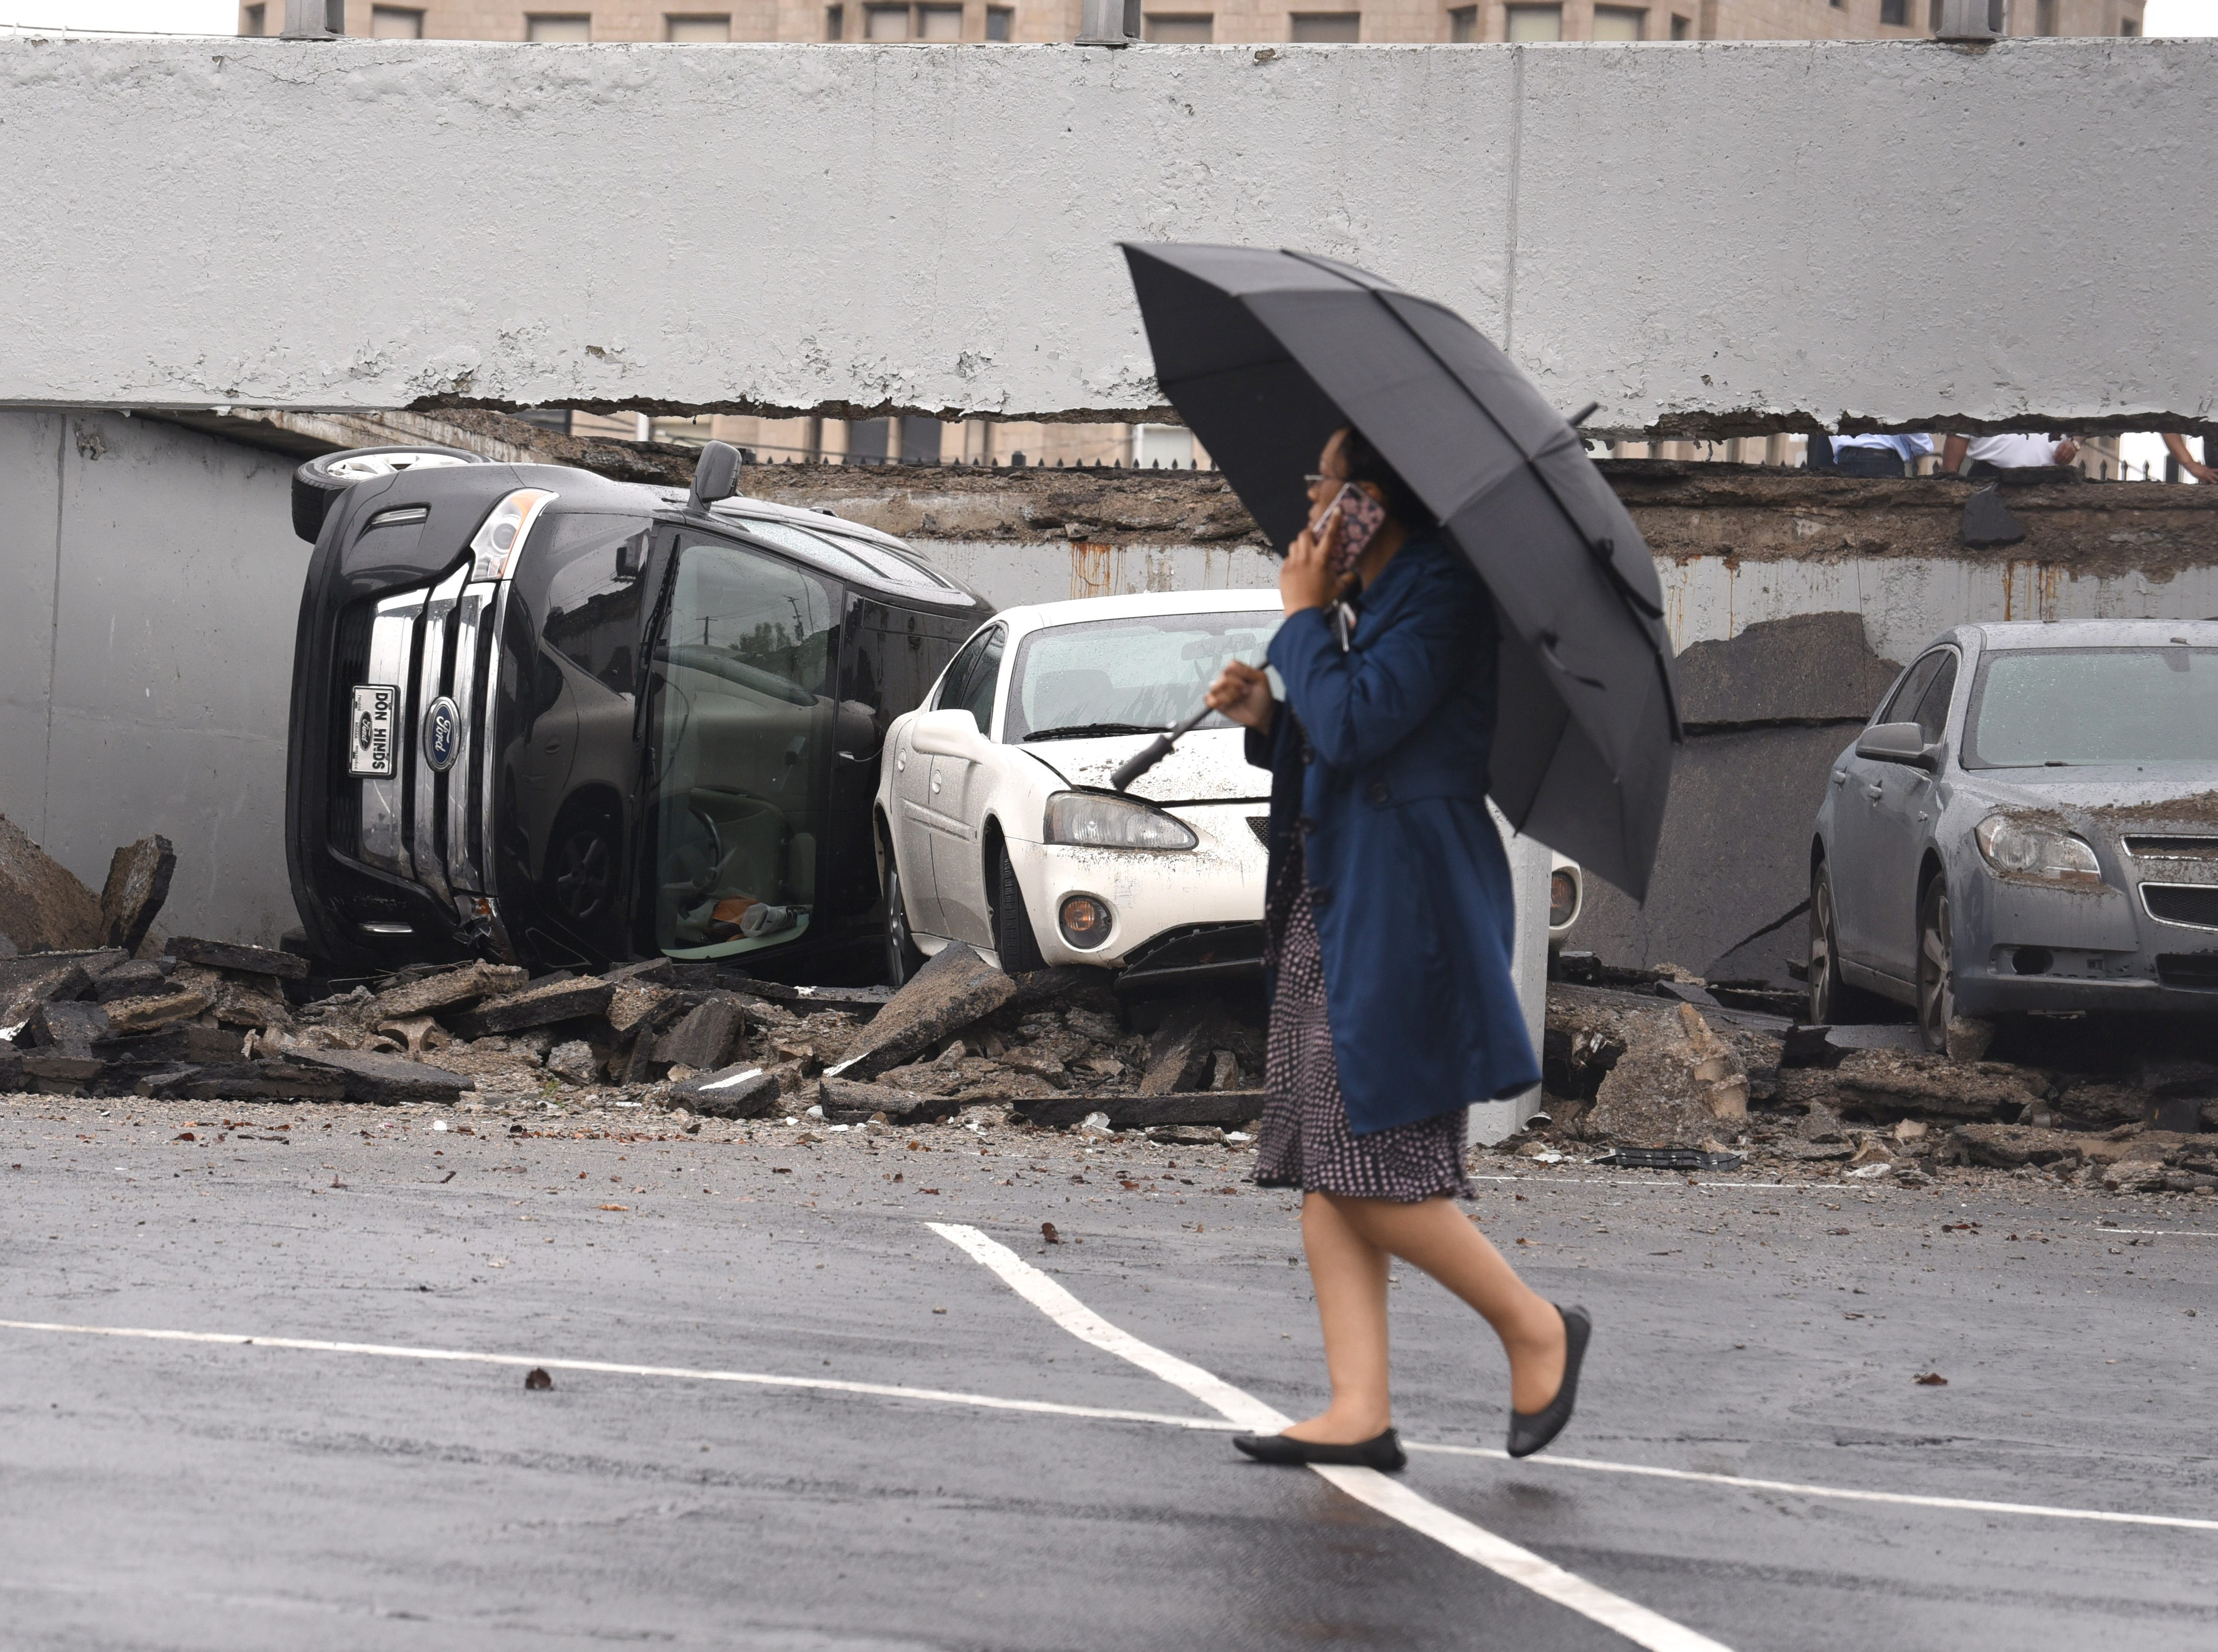 A woman walks by cars damaged by the collapse of a parking structure at Rivard and Franklin in Detroit on May 3, 2018.